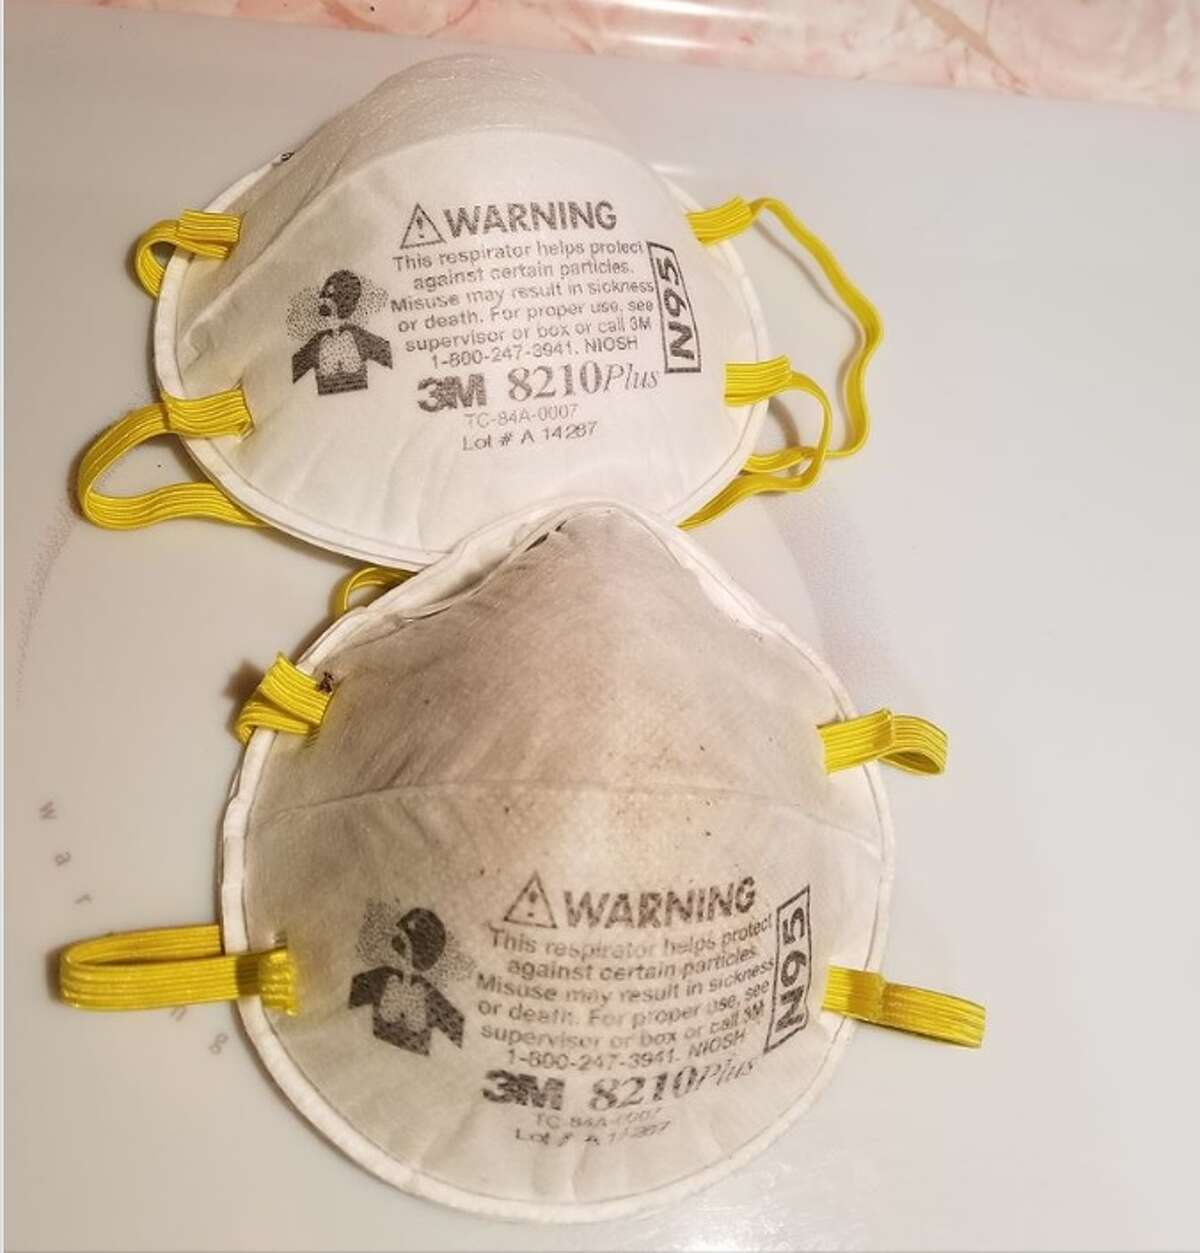 A new dust mask (top) compared to a dust mask used outside for several hours (bottom) during the hazardous air quality conditions November 15th, 2018.